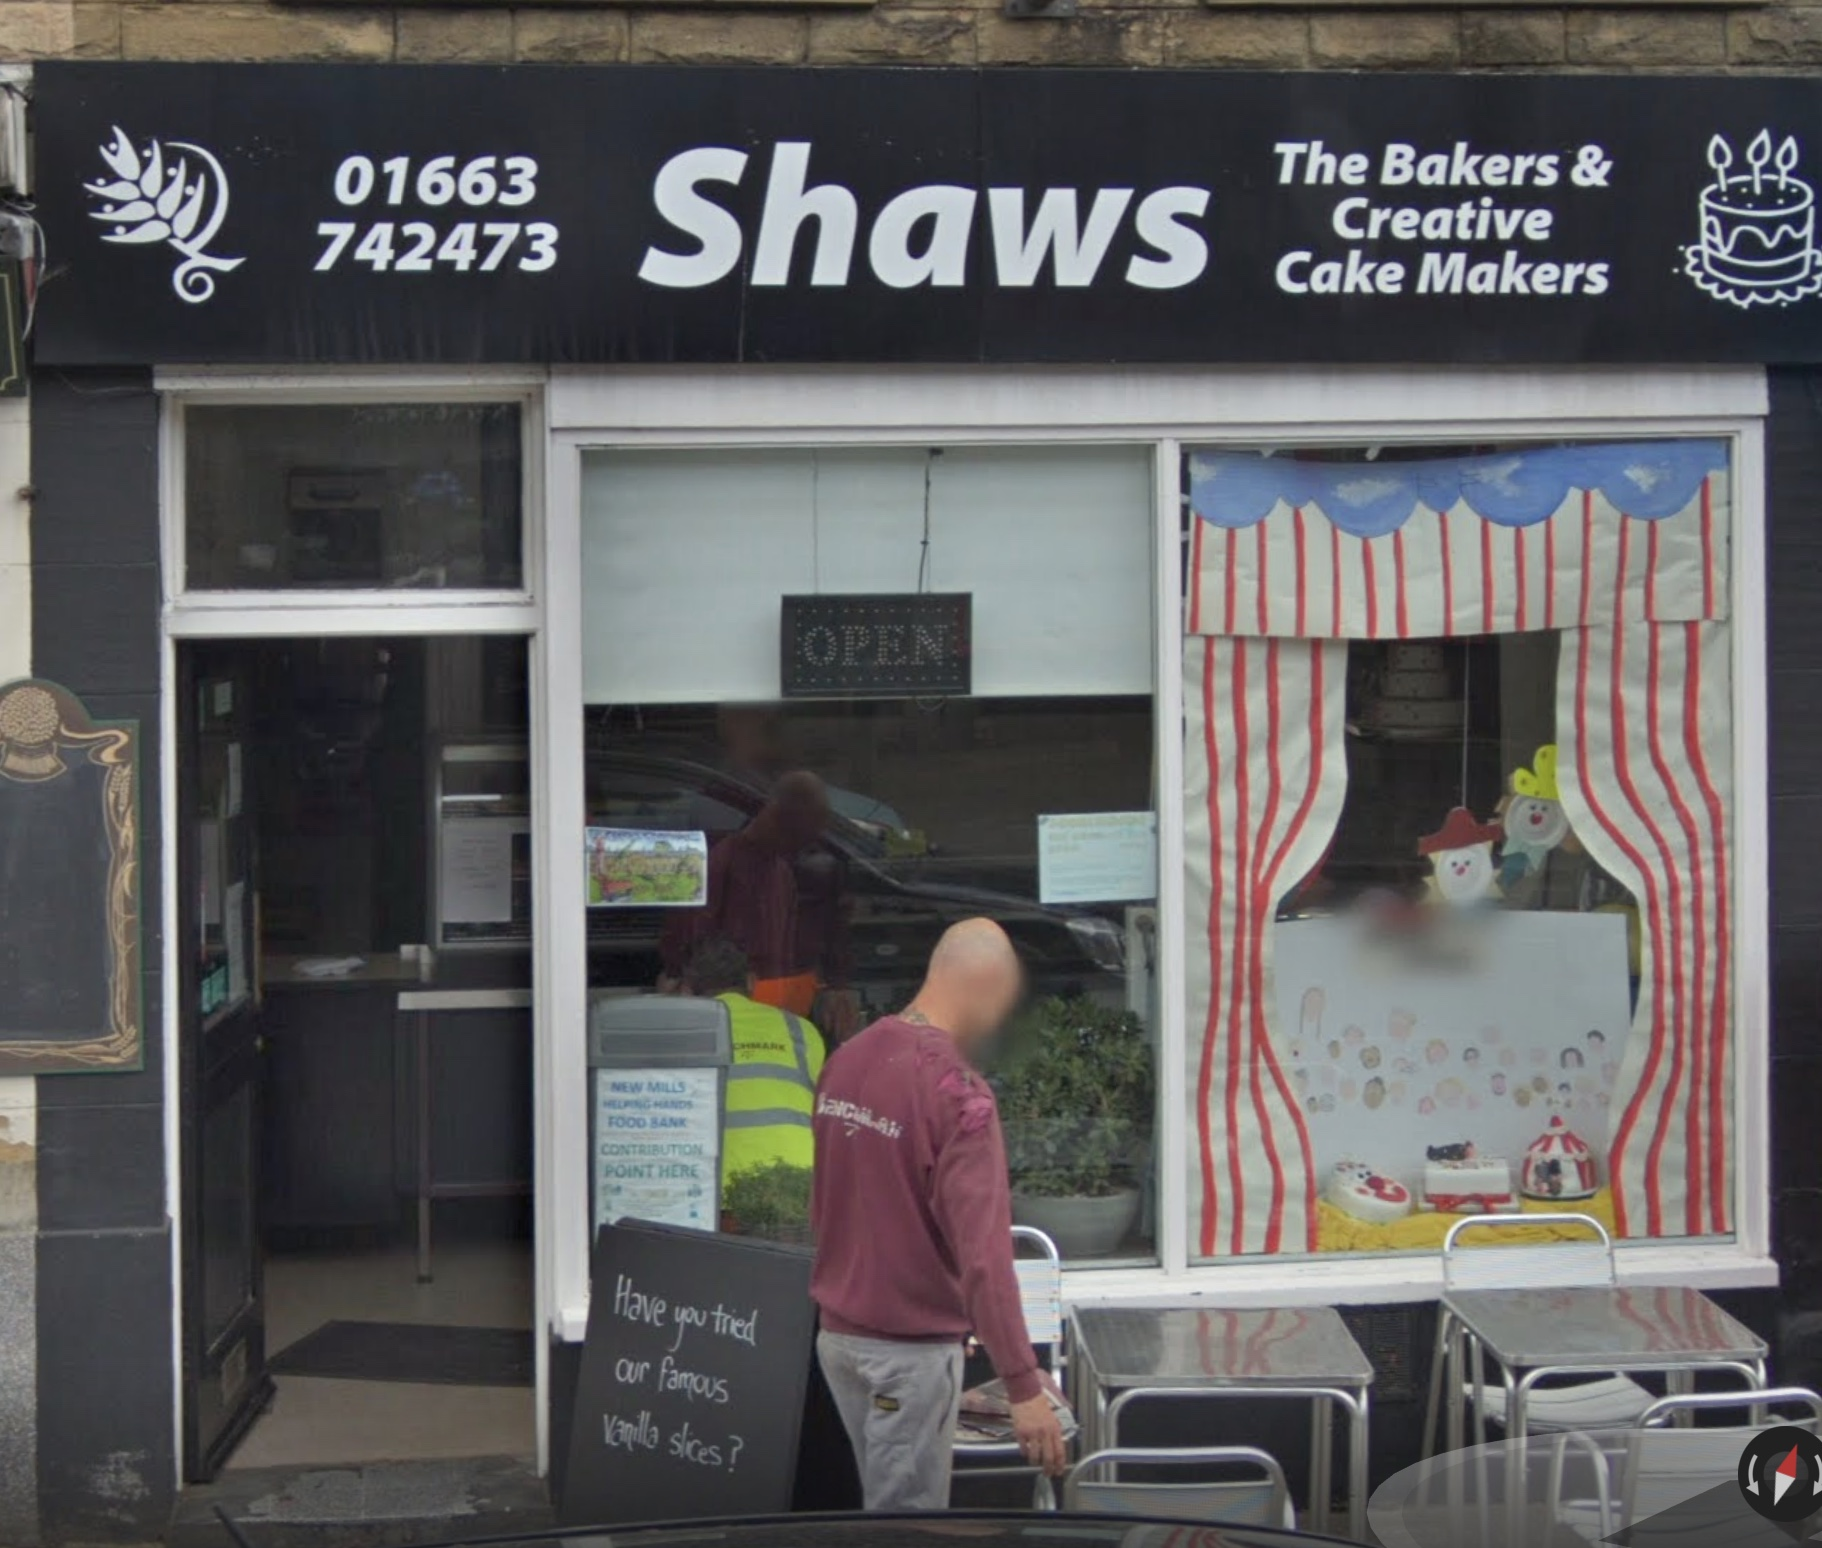 44. Shaws The Baker